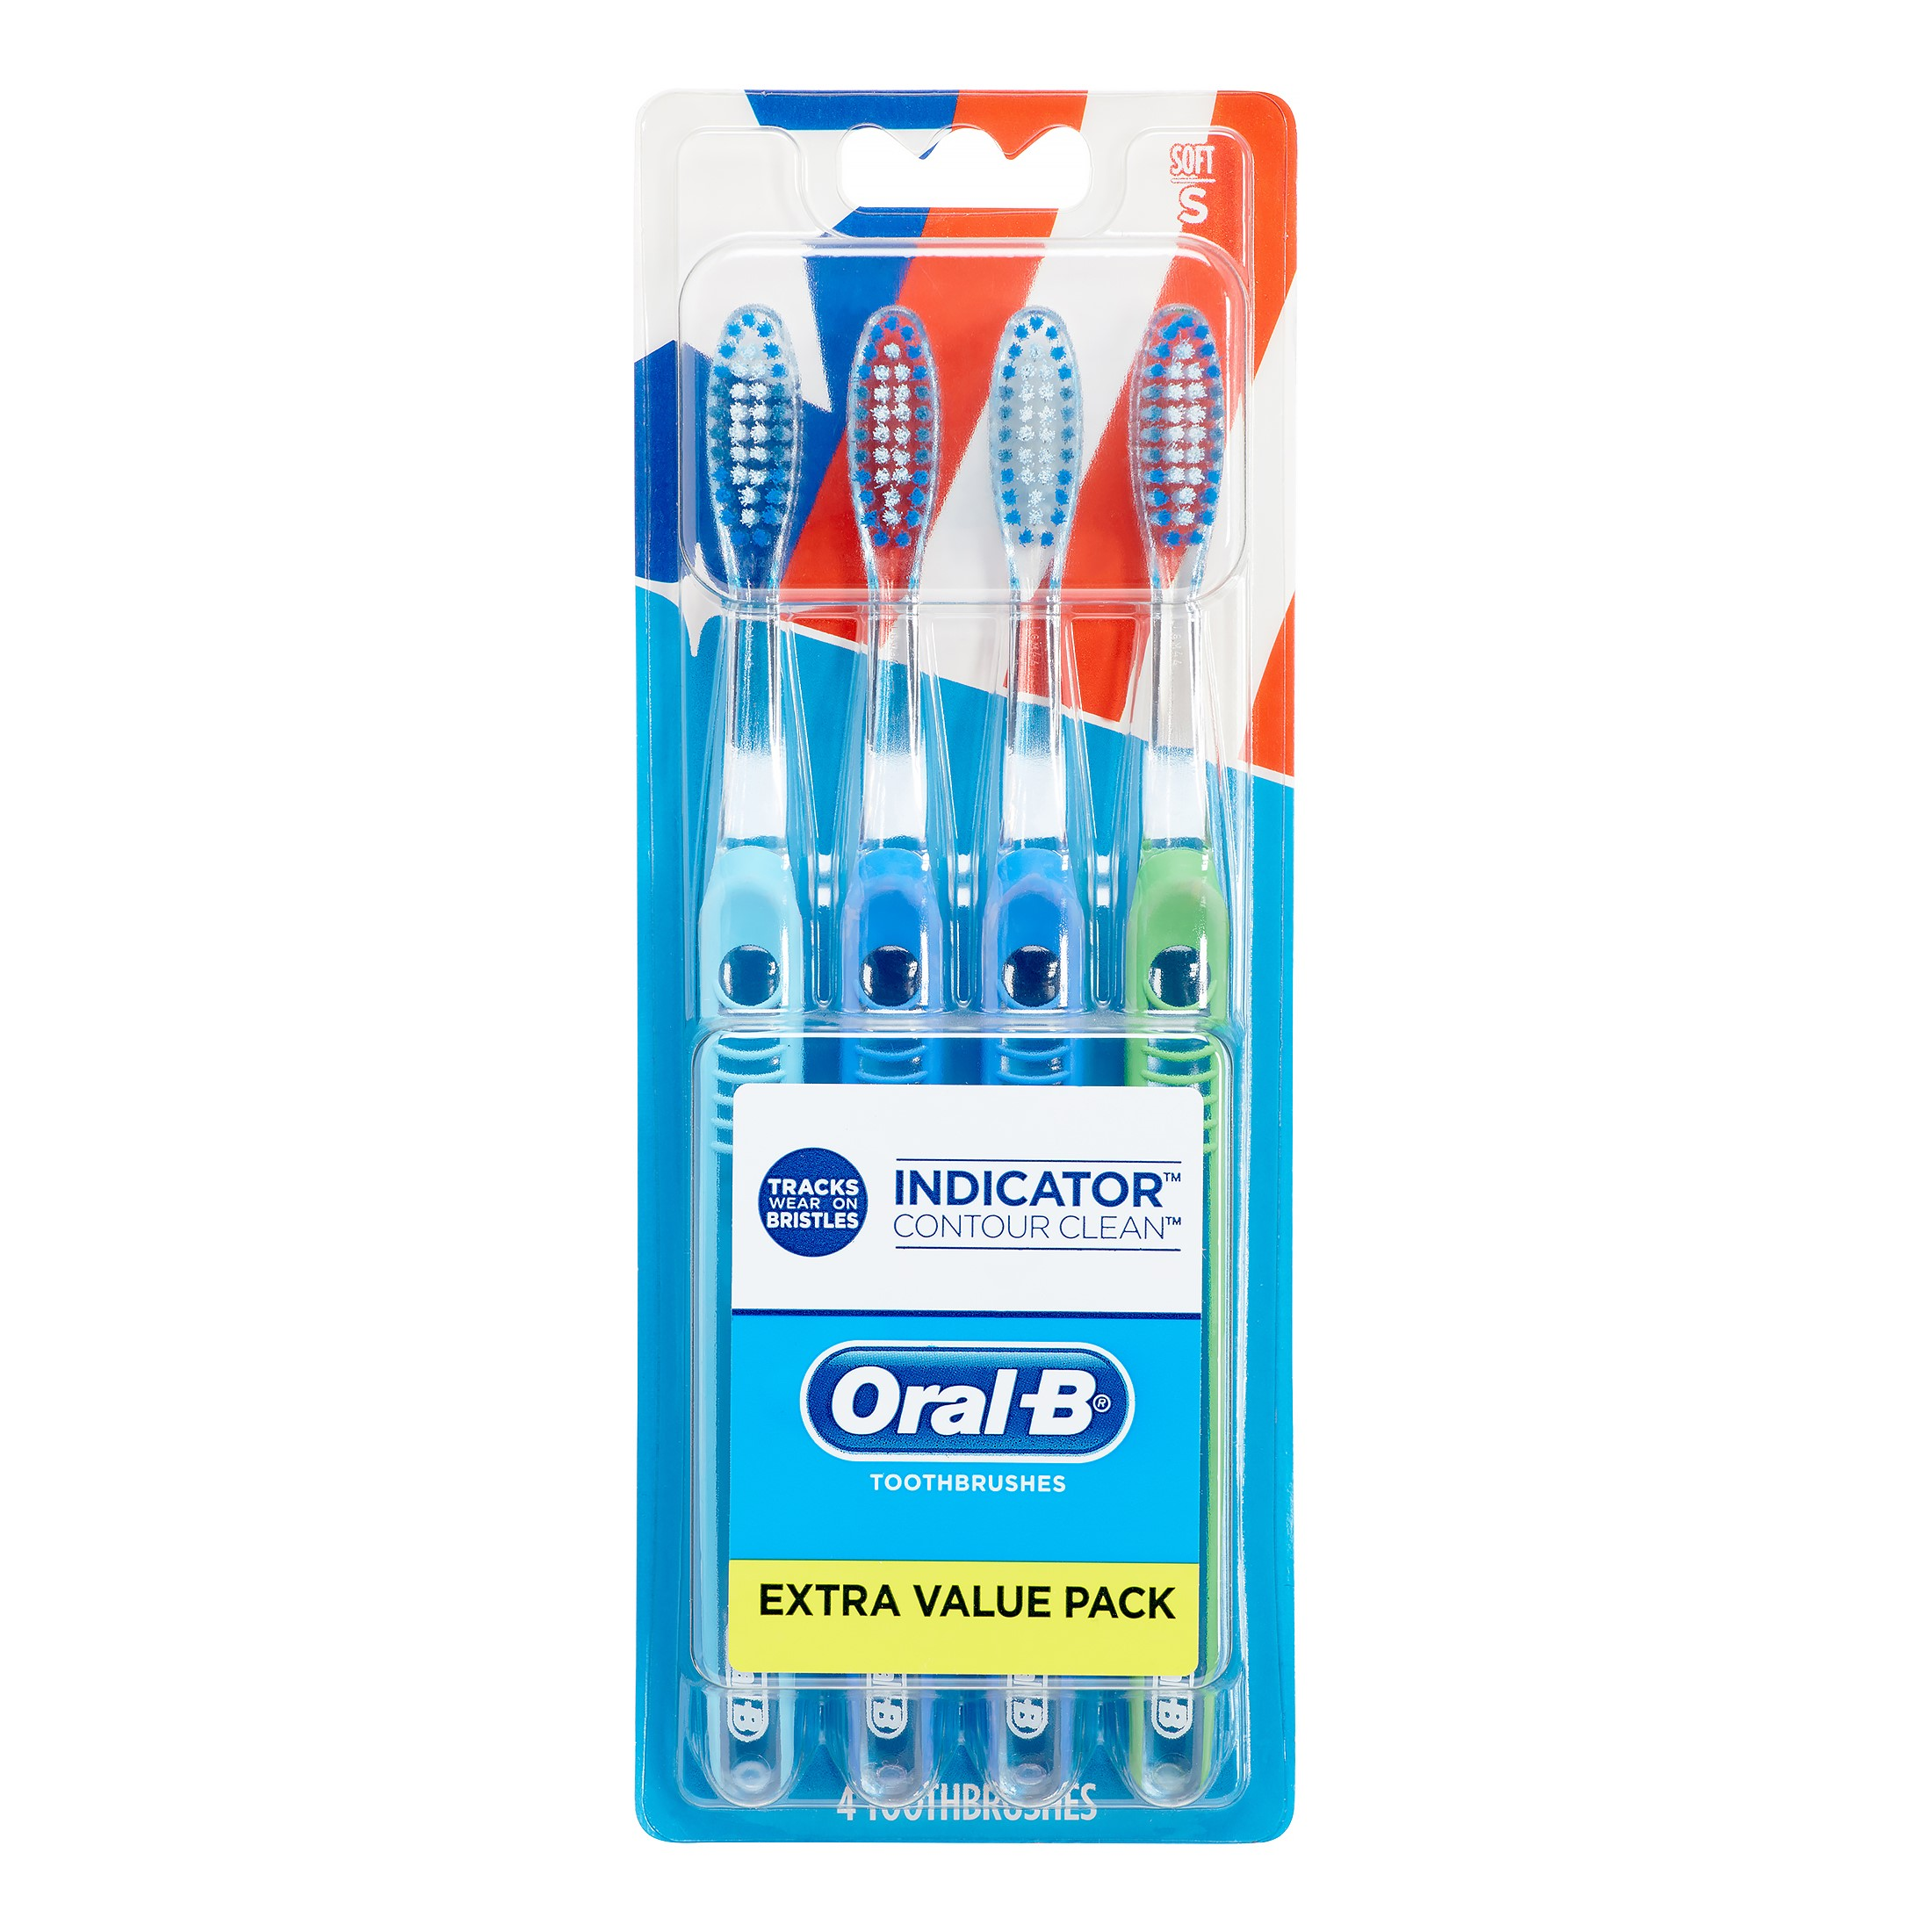 Oral-B Indicator Contour Clean Toothbrushes, Soft Bristles, 4 Count